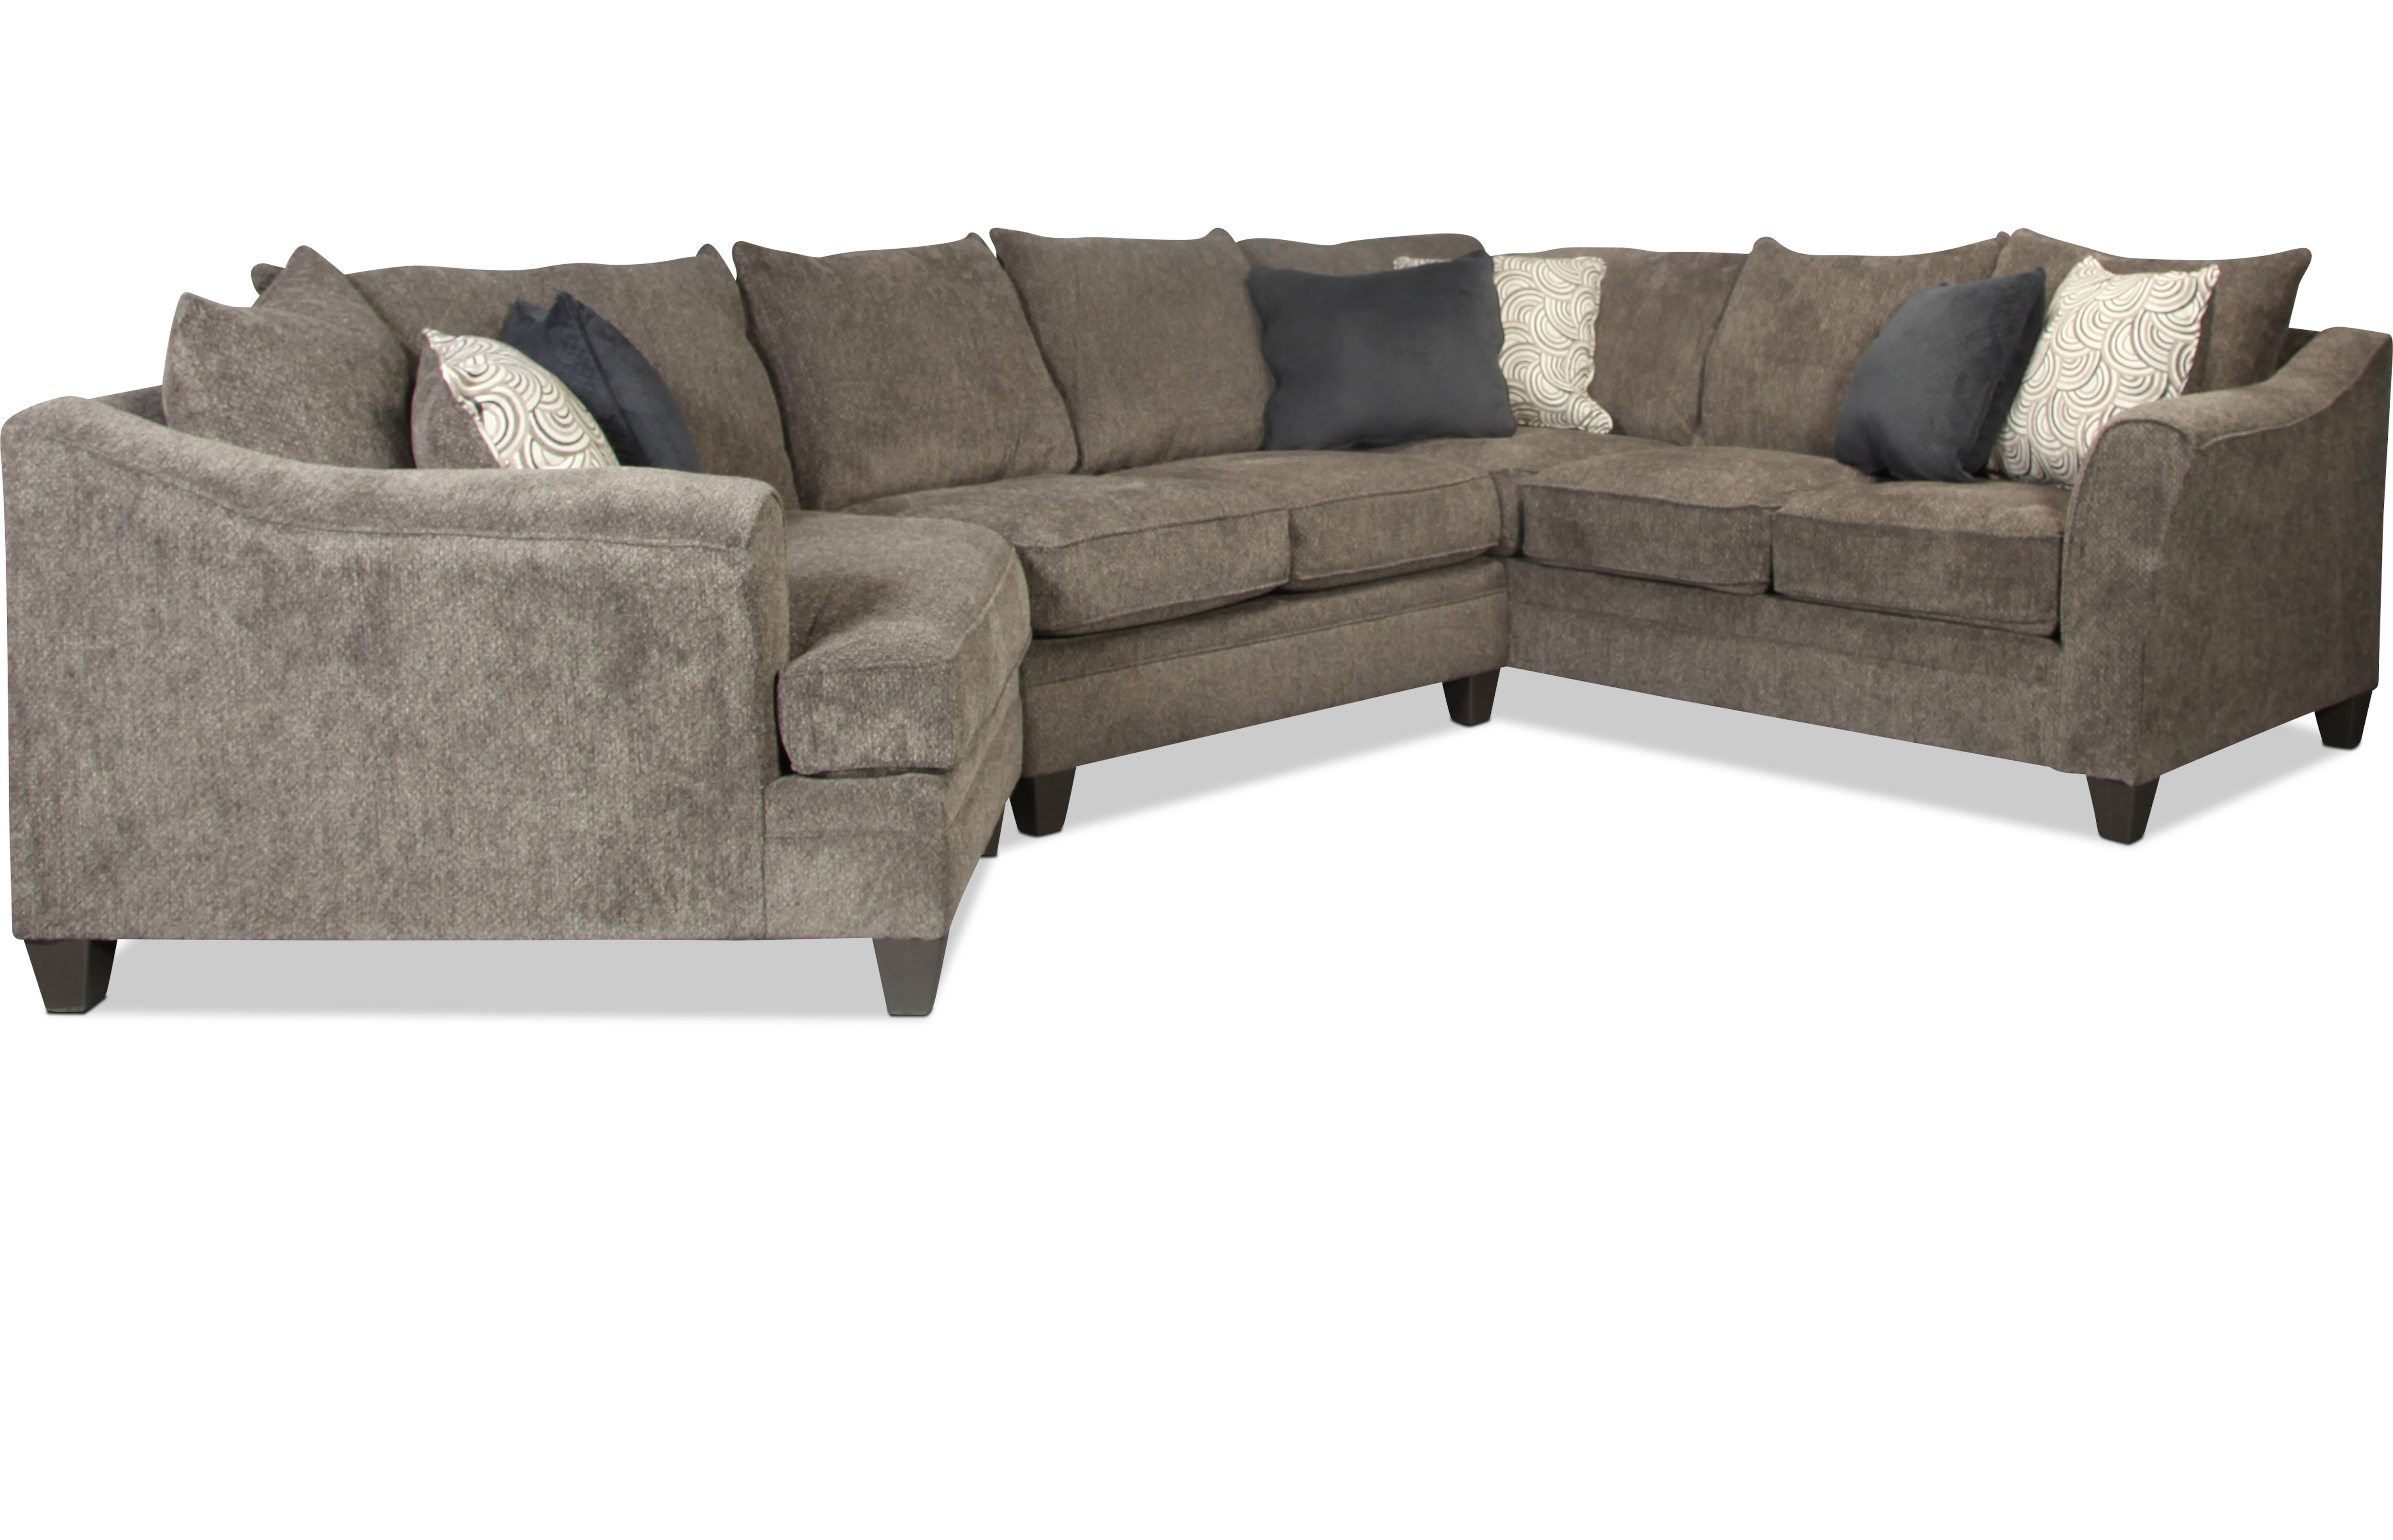 Sectionals | Levin Furniture Inside Sierra Down 3 Piece Sectionals With Laf Chaise (View 24 of 30)